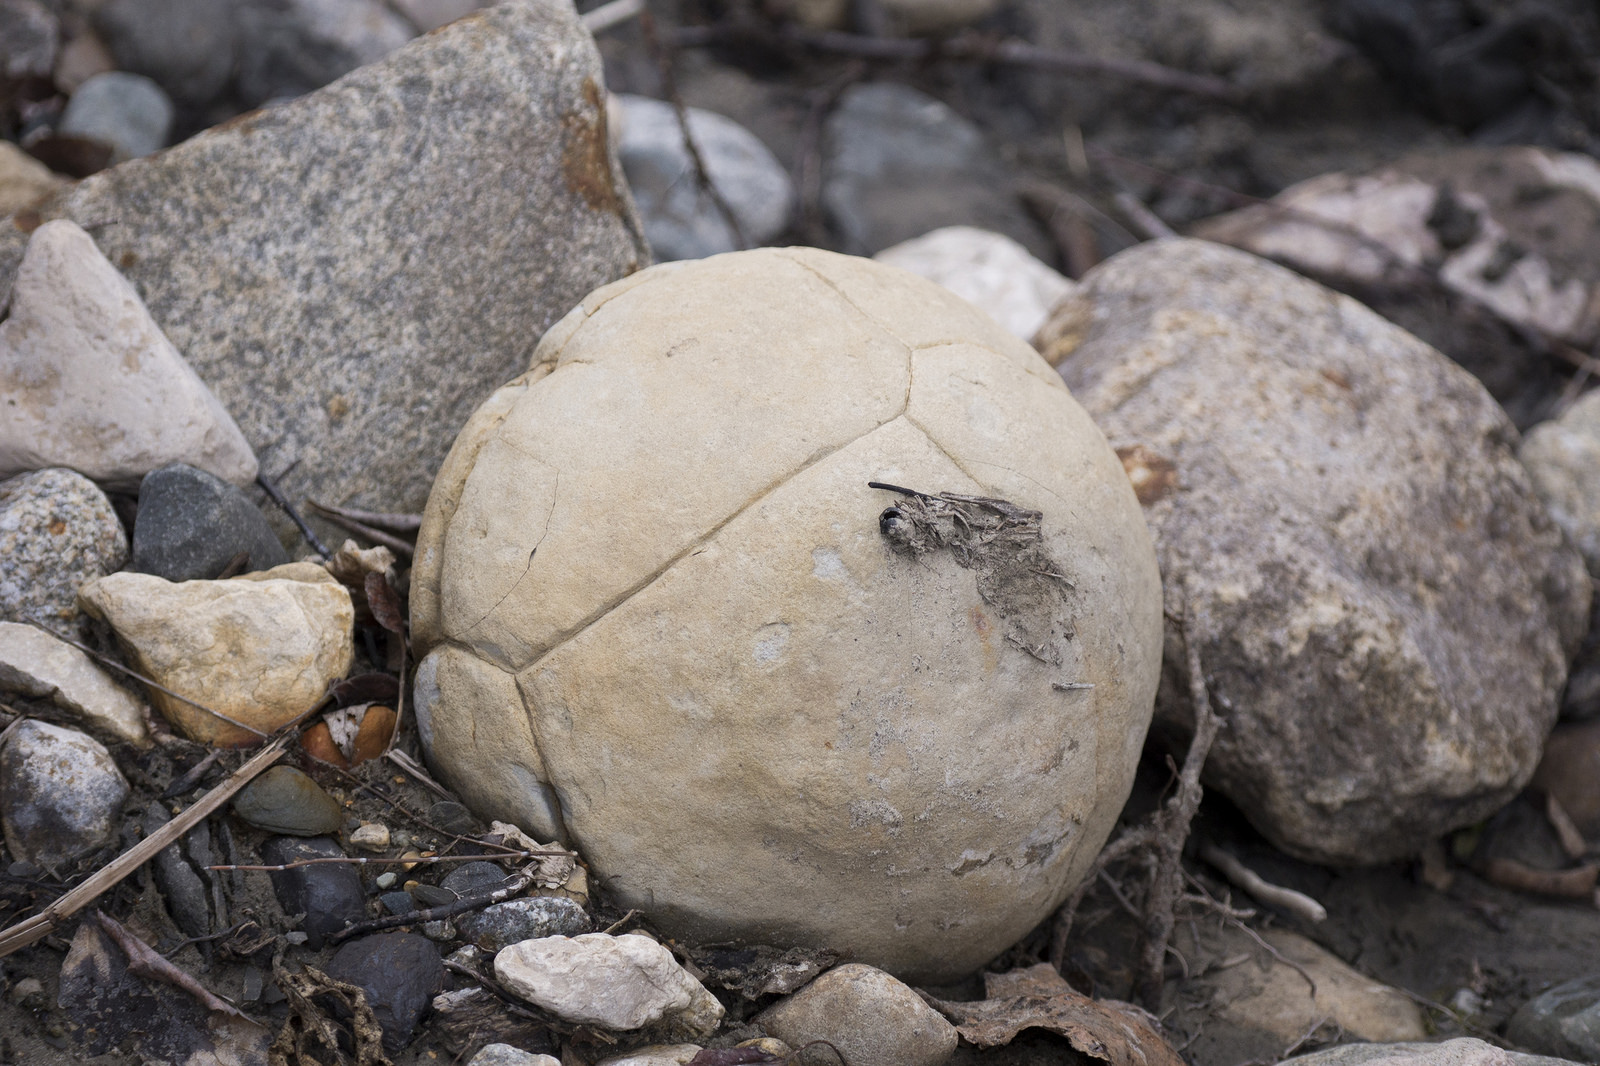 Large, round rocks such as this were found at Bainbridge River. We assume they are    septarian concretions   . (Goodson)